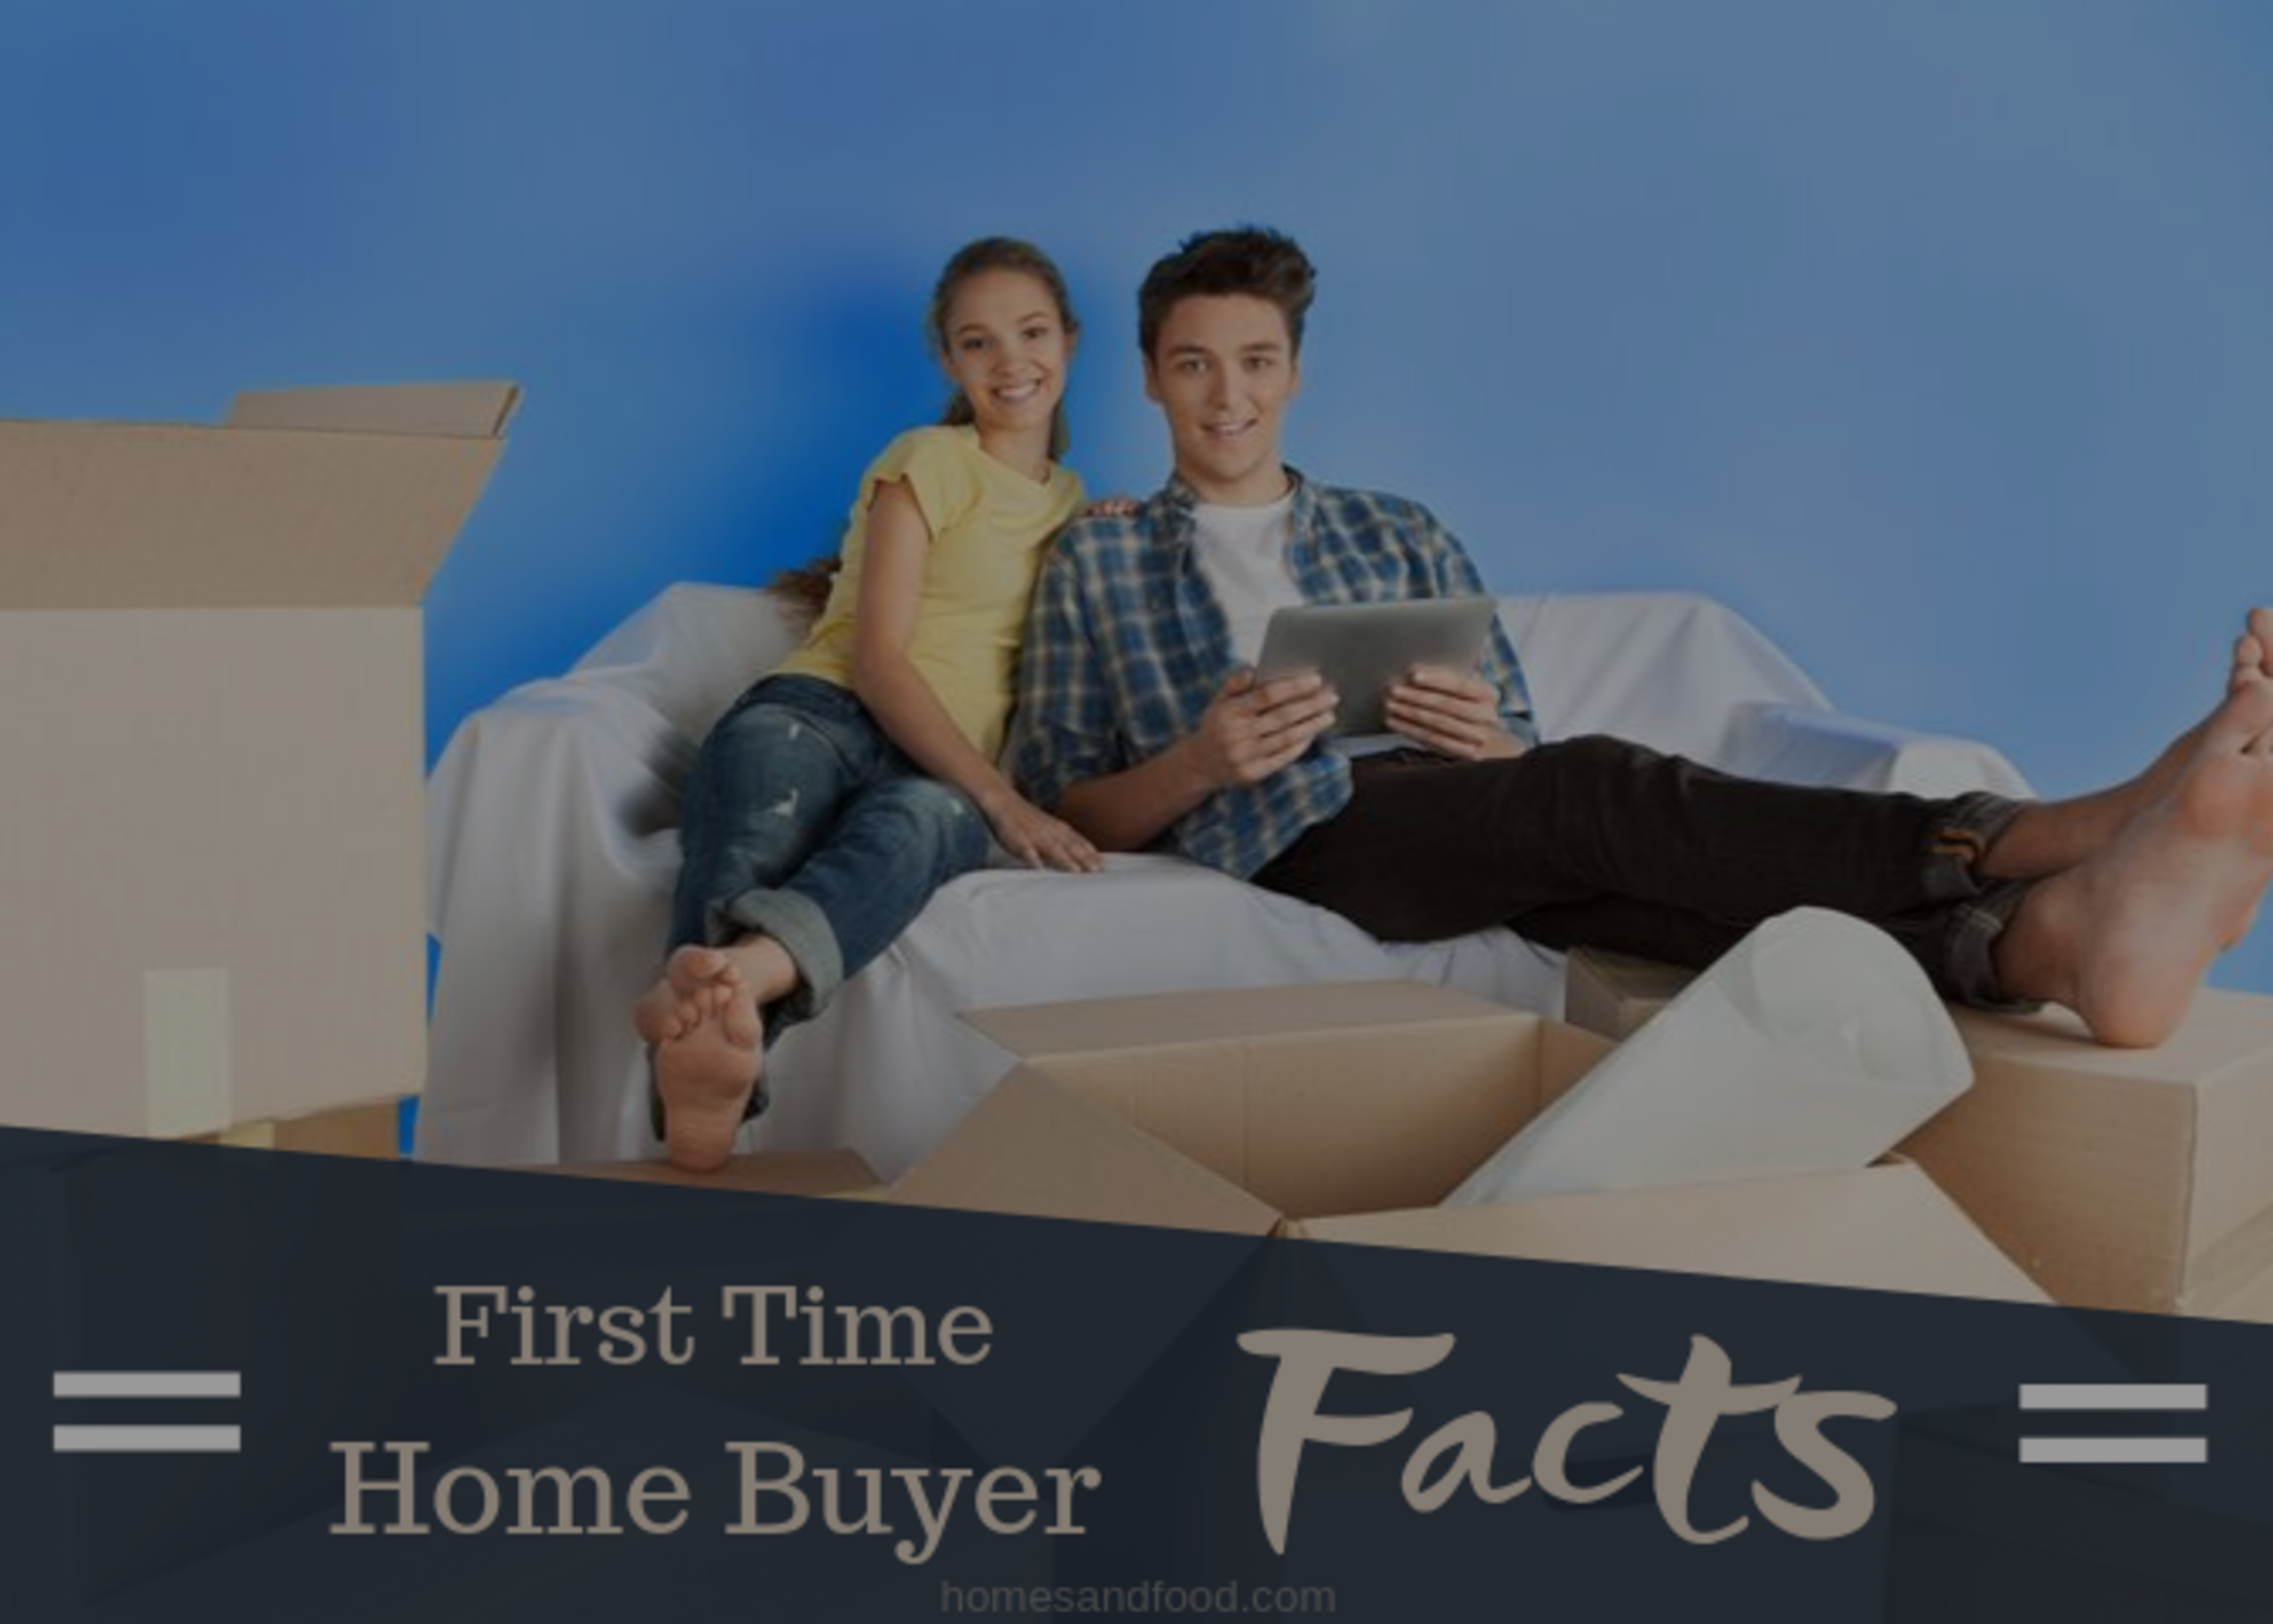 First Time Home Buyer Facts 2019